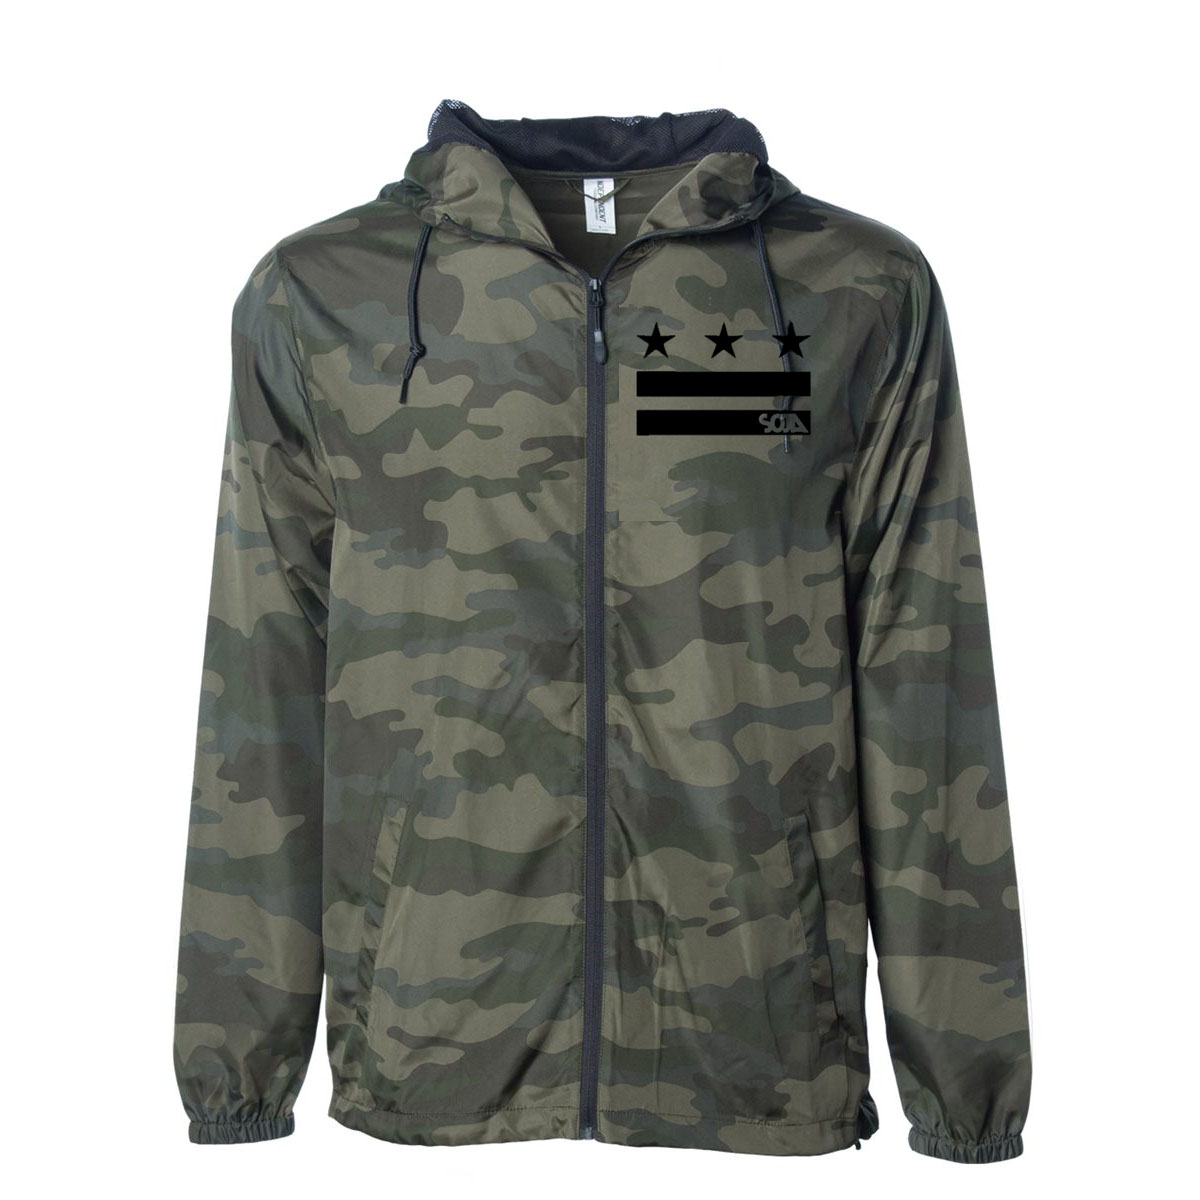 SOJA - Stars and Bars Camo Windbreaker